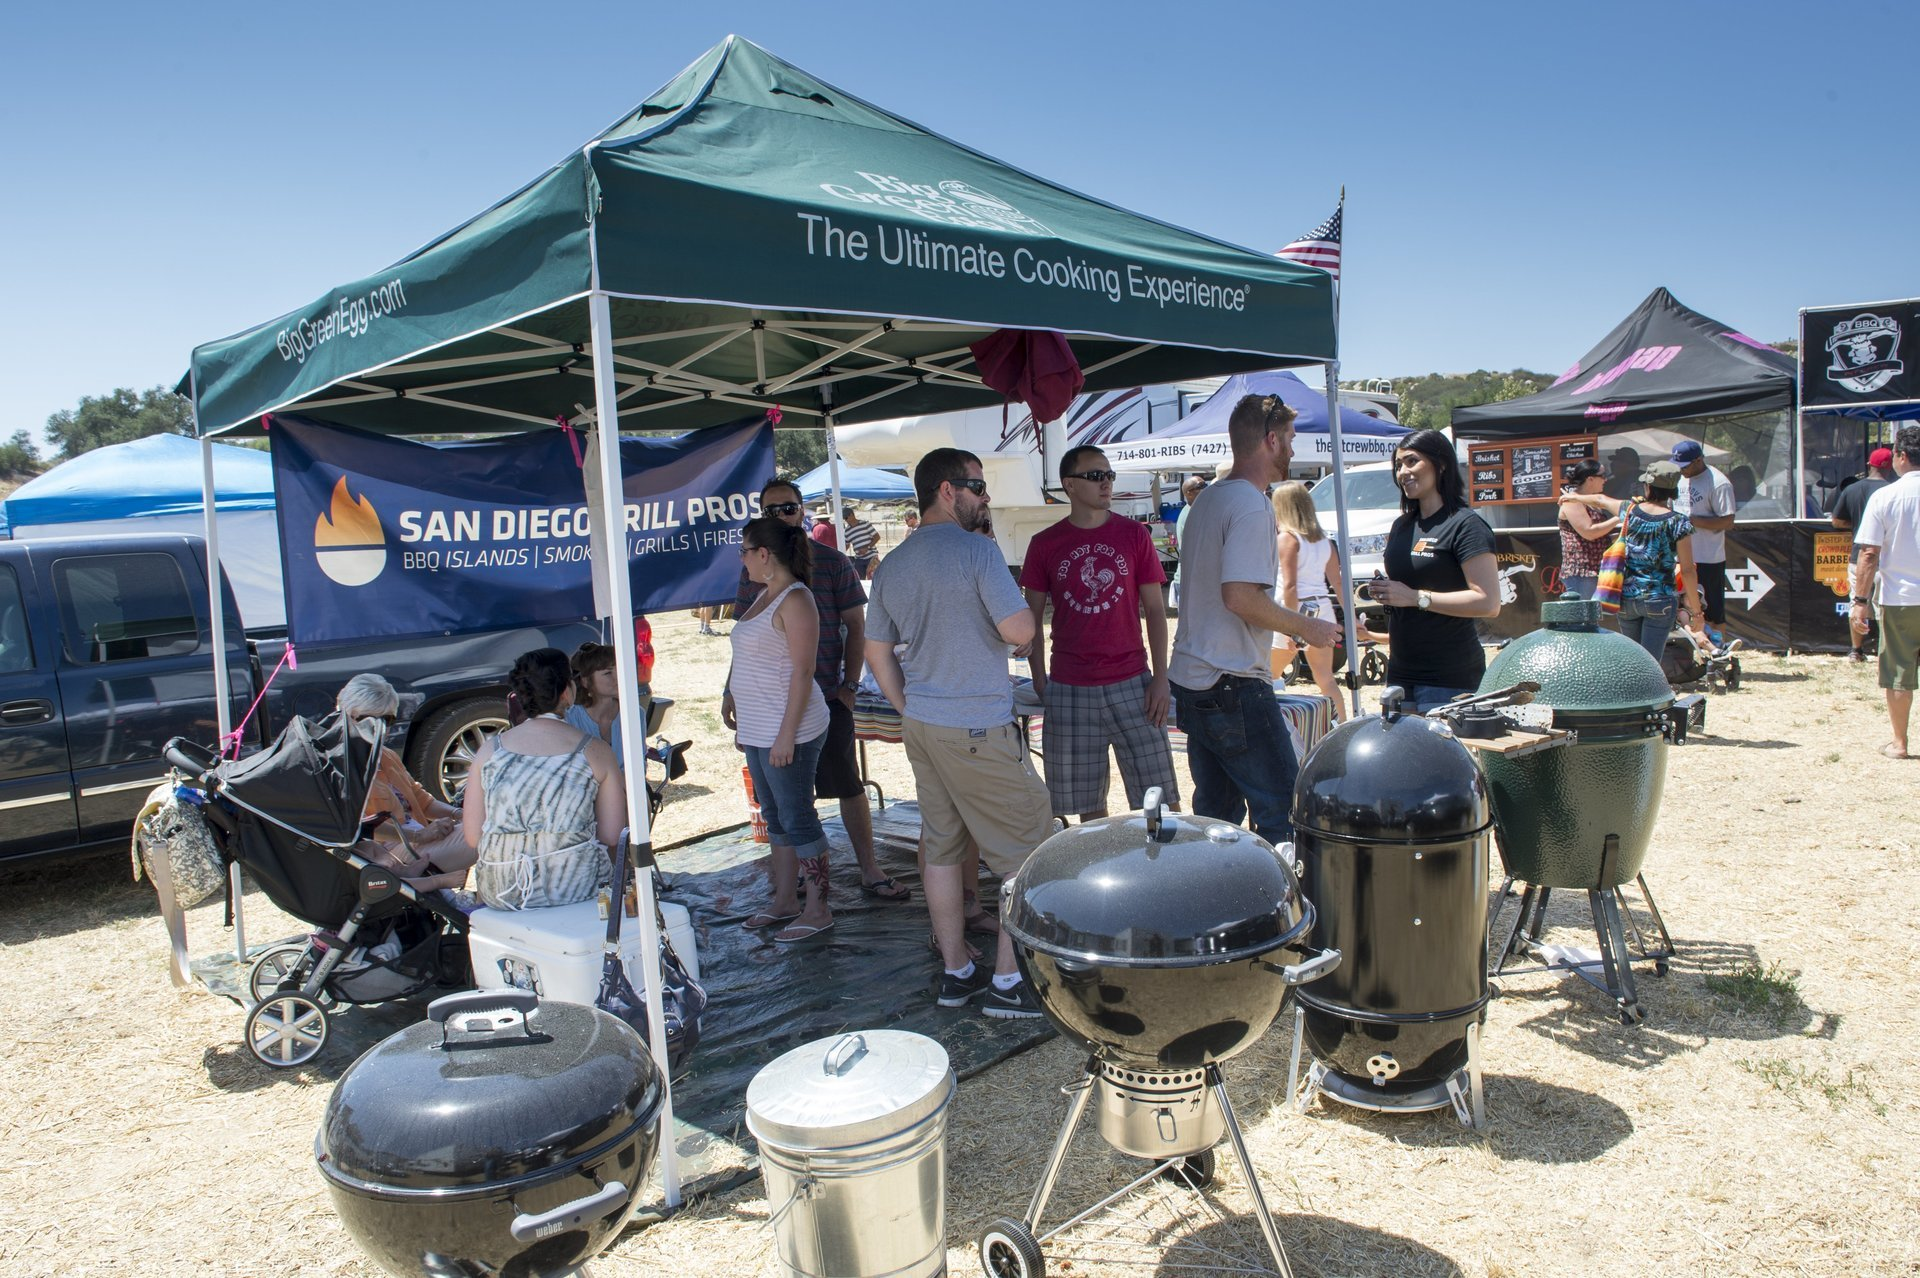 SD Grill Pros event tent